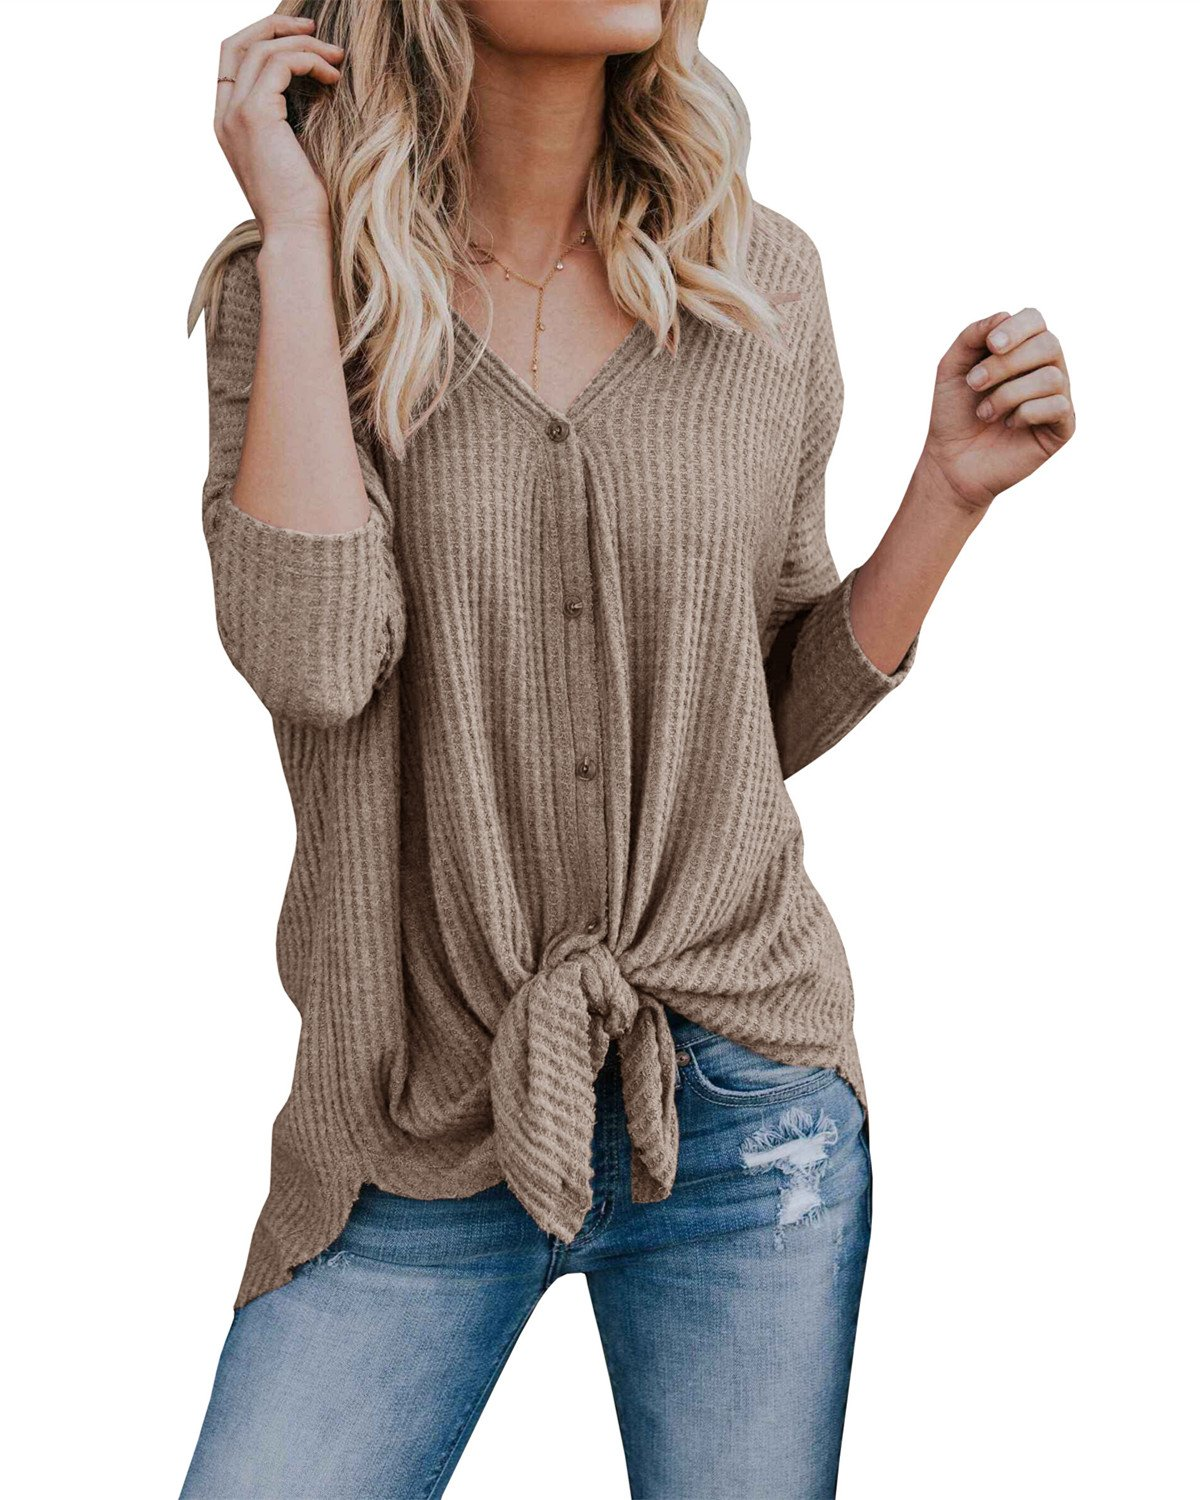 Womens Loose Fitting Henley Shirts Long Sleeve Button Down V Neck High Low Batwing Tops